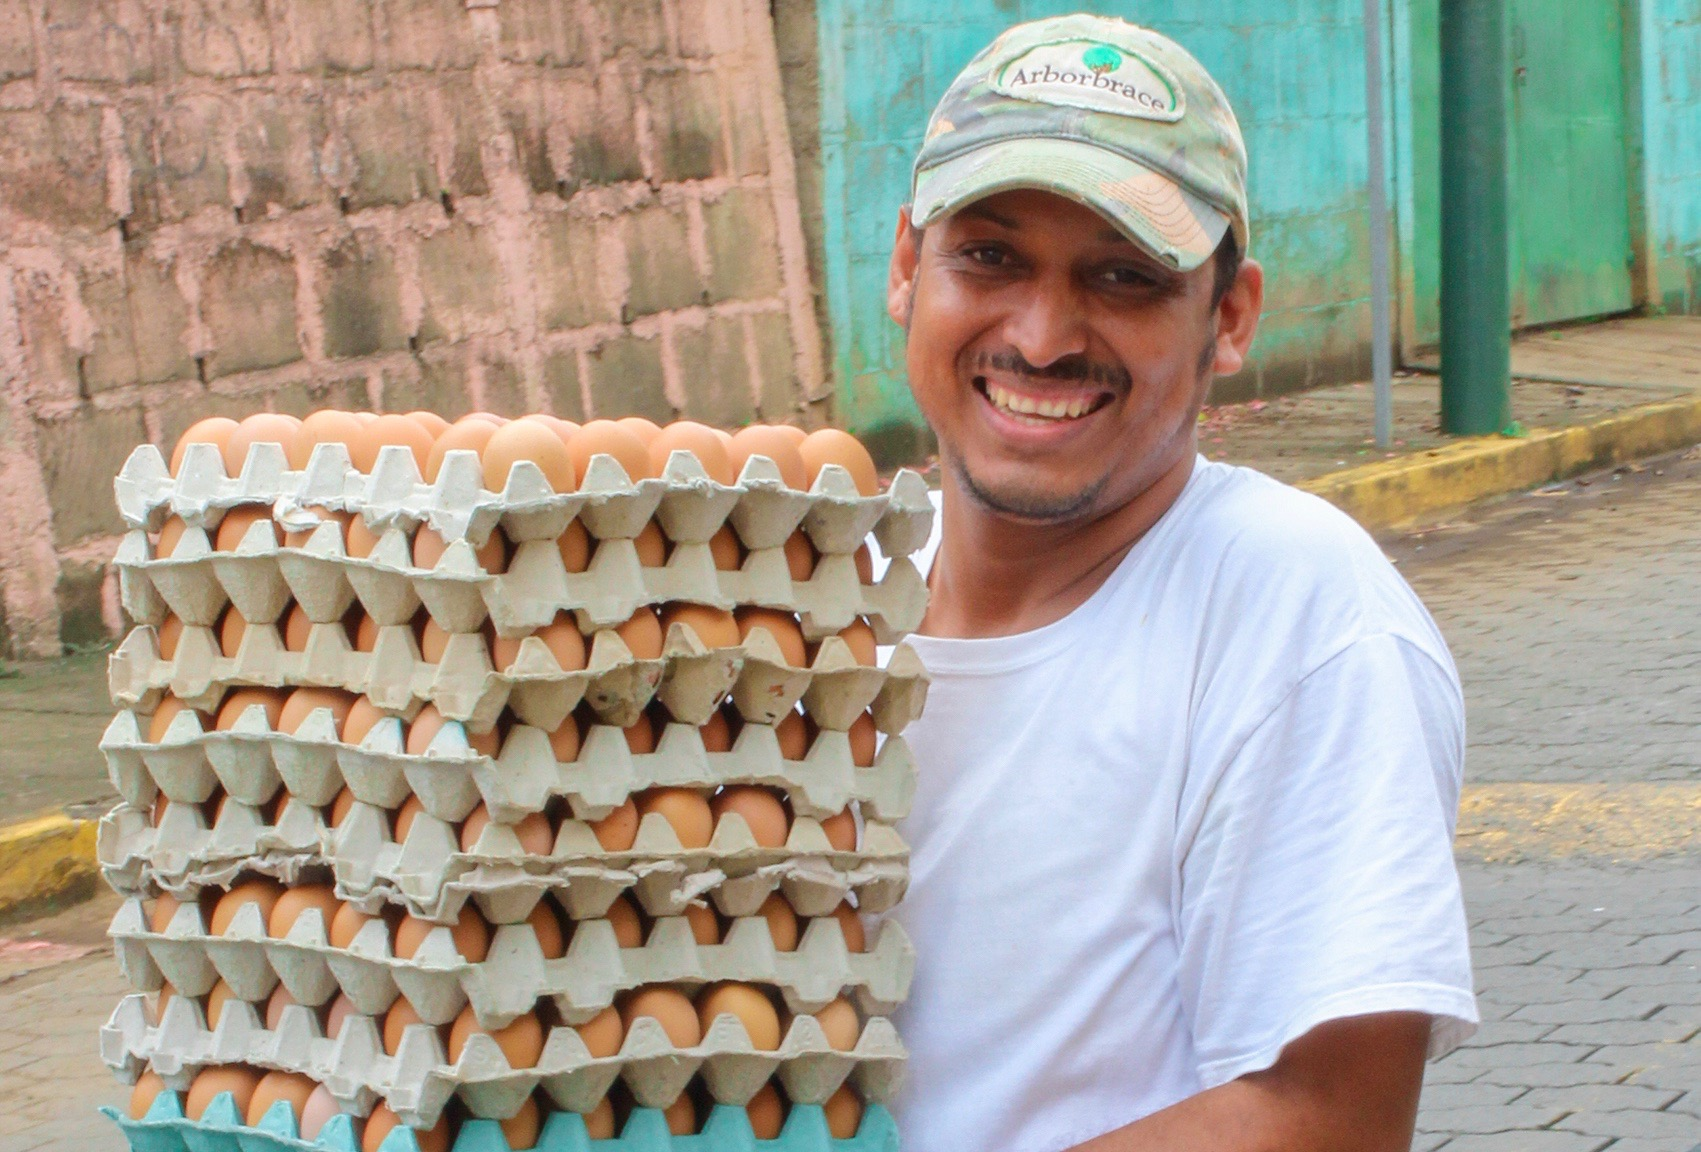 Man carrying trays of eggs